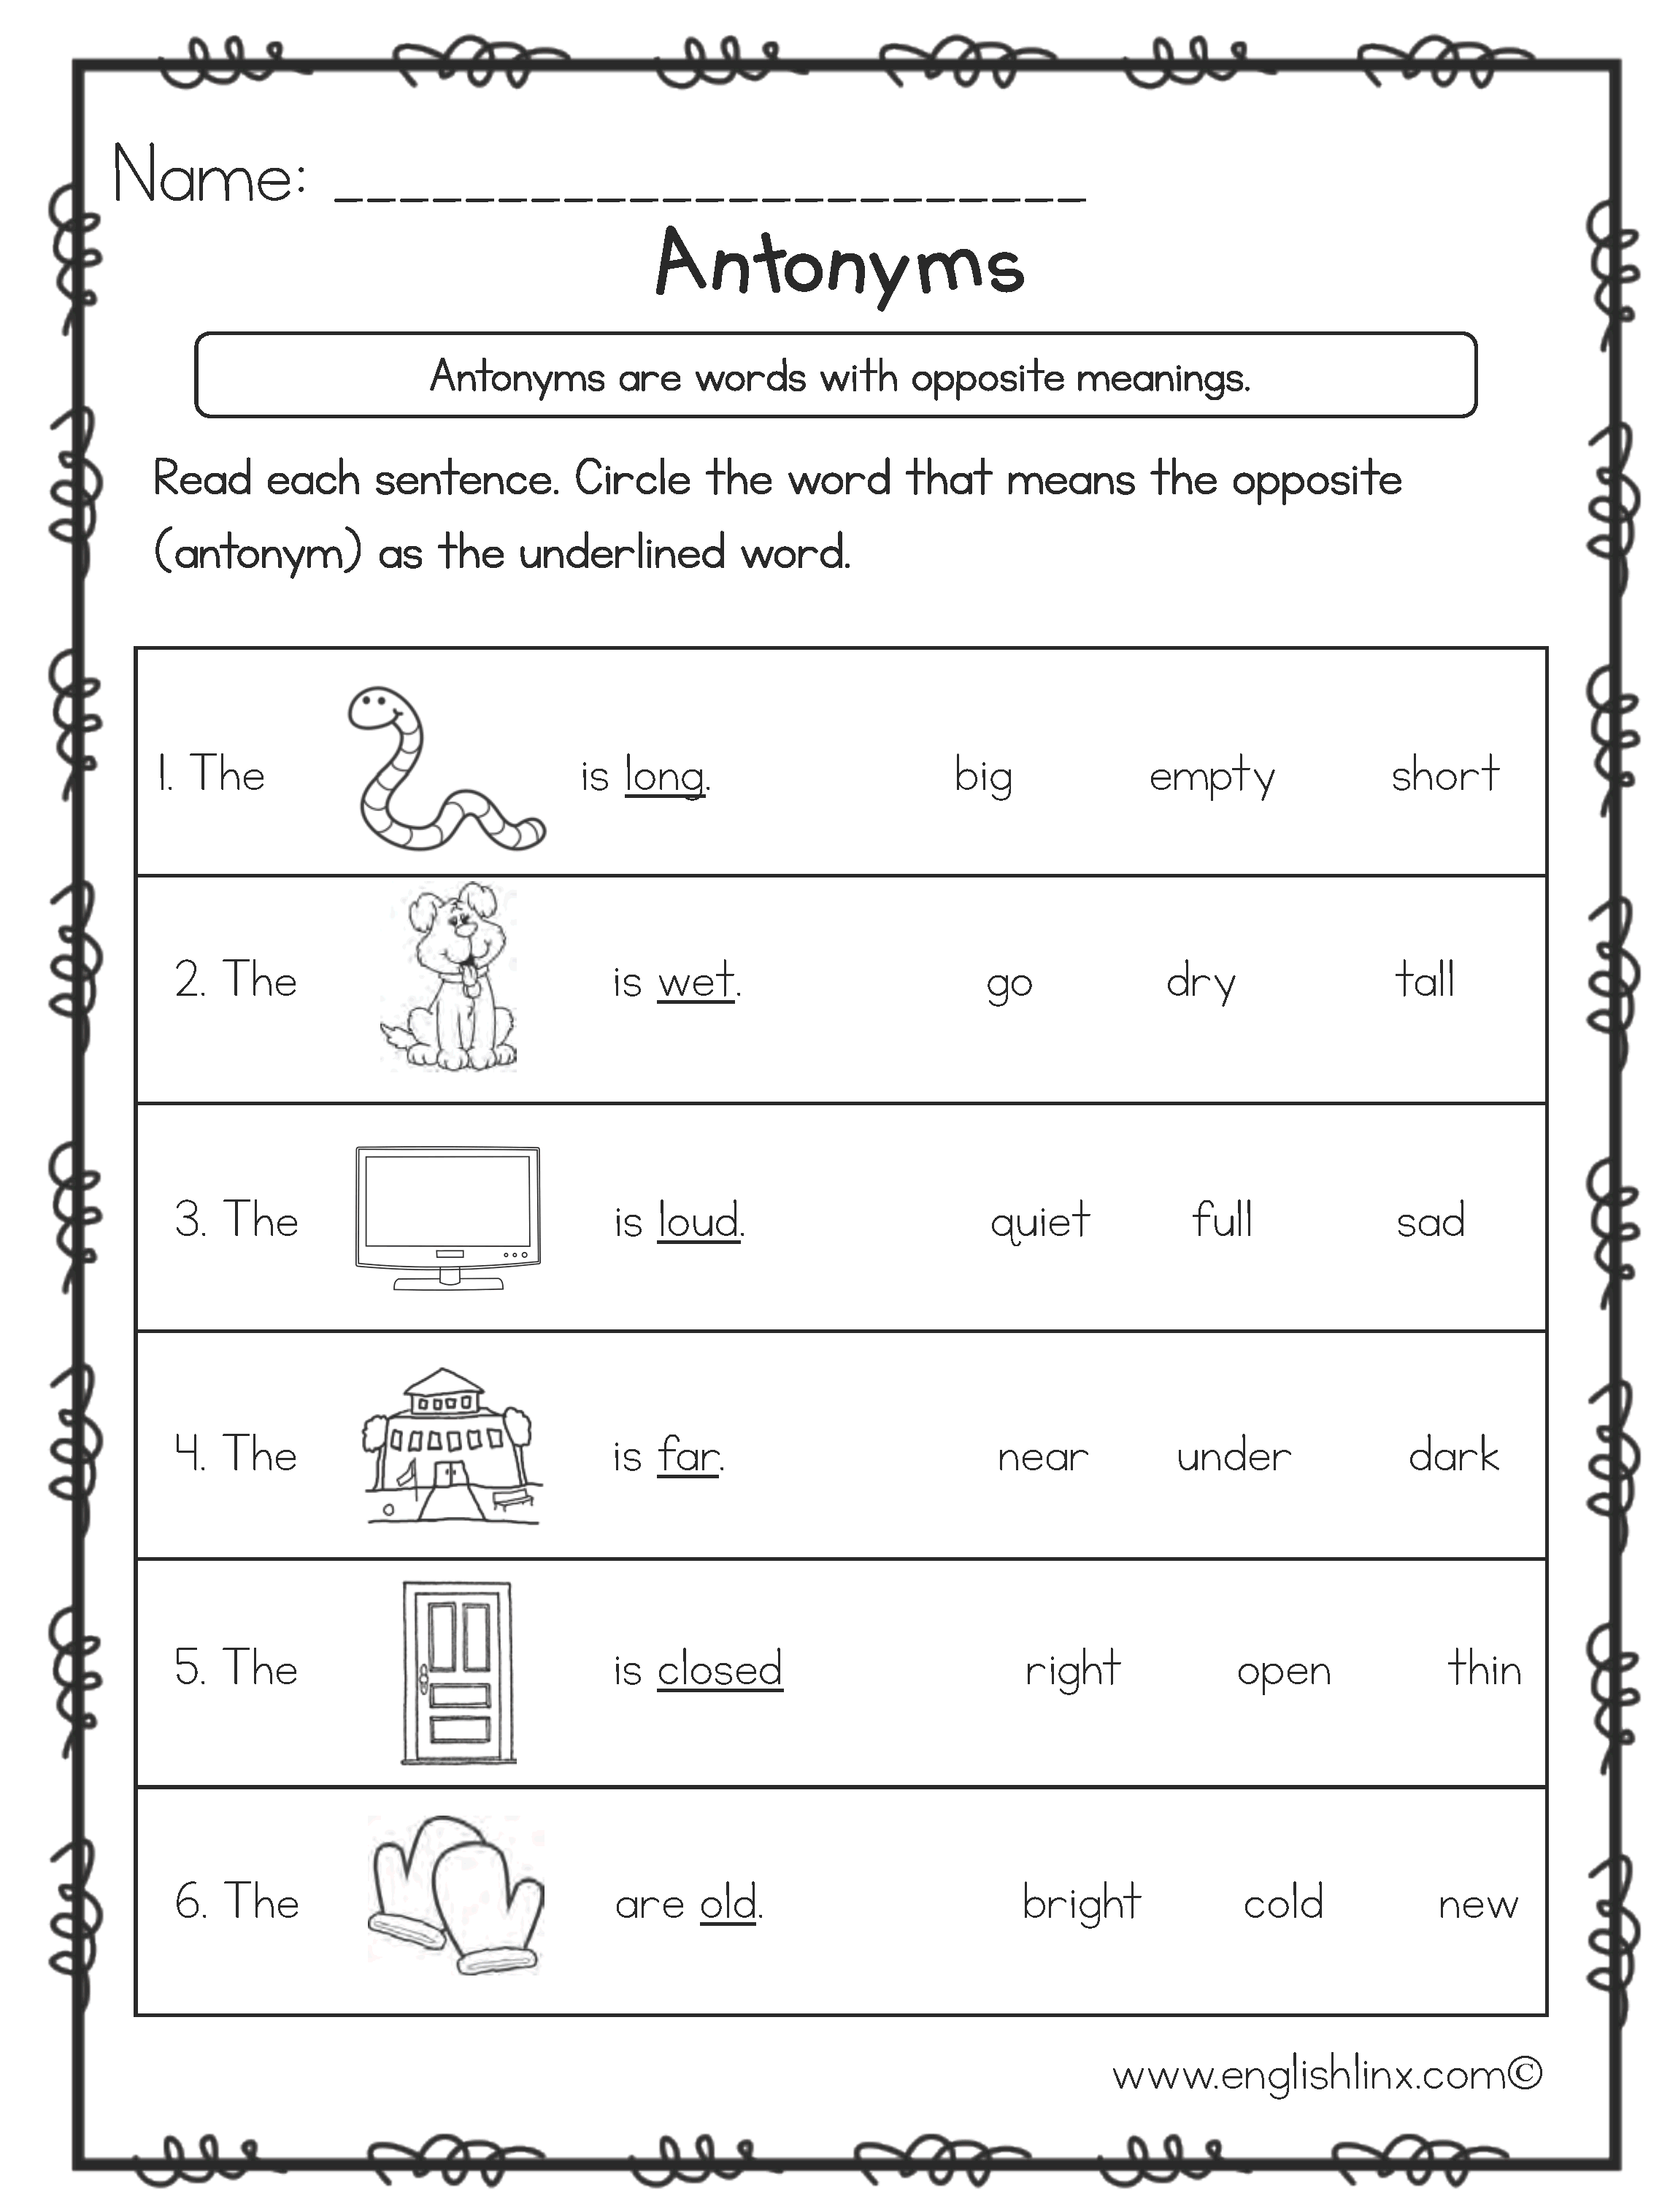 Antonyms Worksheets